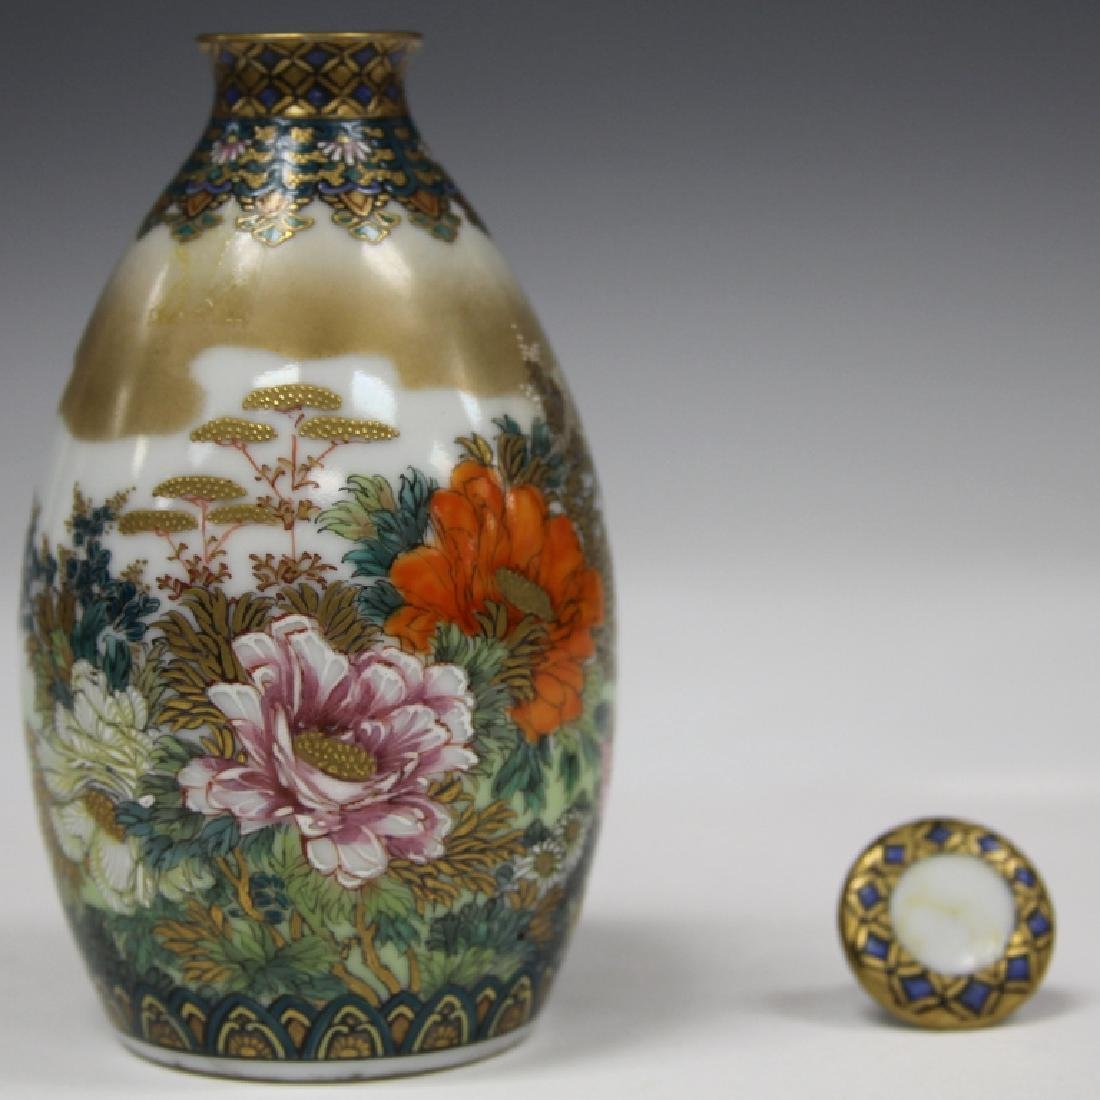 PAIR OF FINE JAPANESE PAINTED PORCELAIN BOTTLES - 4